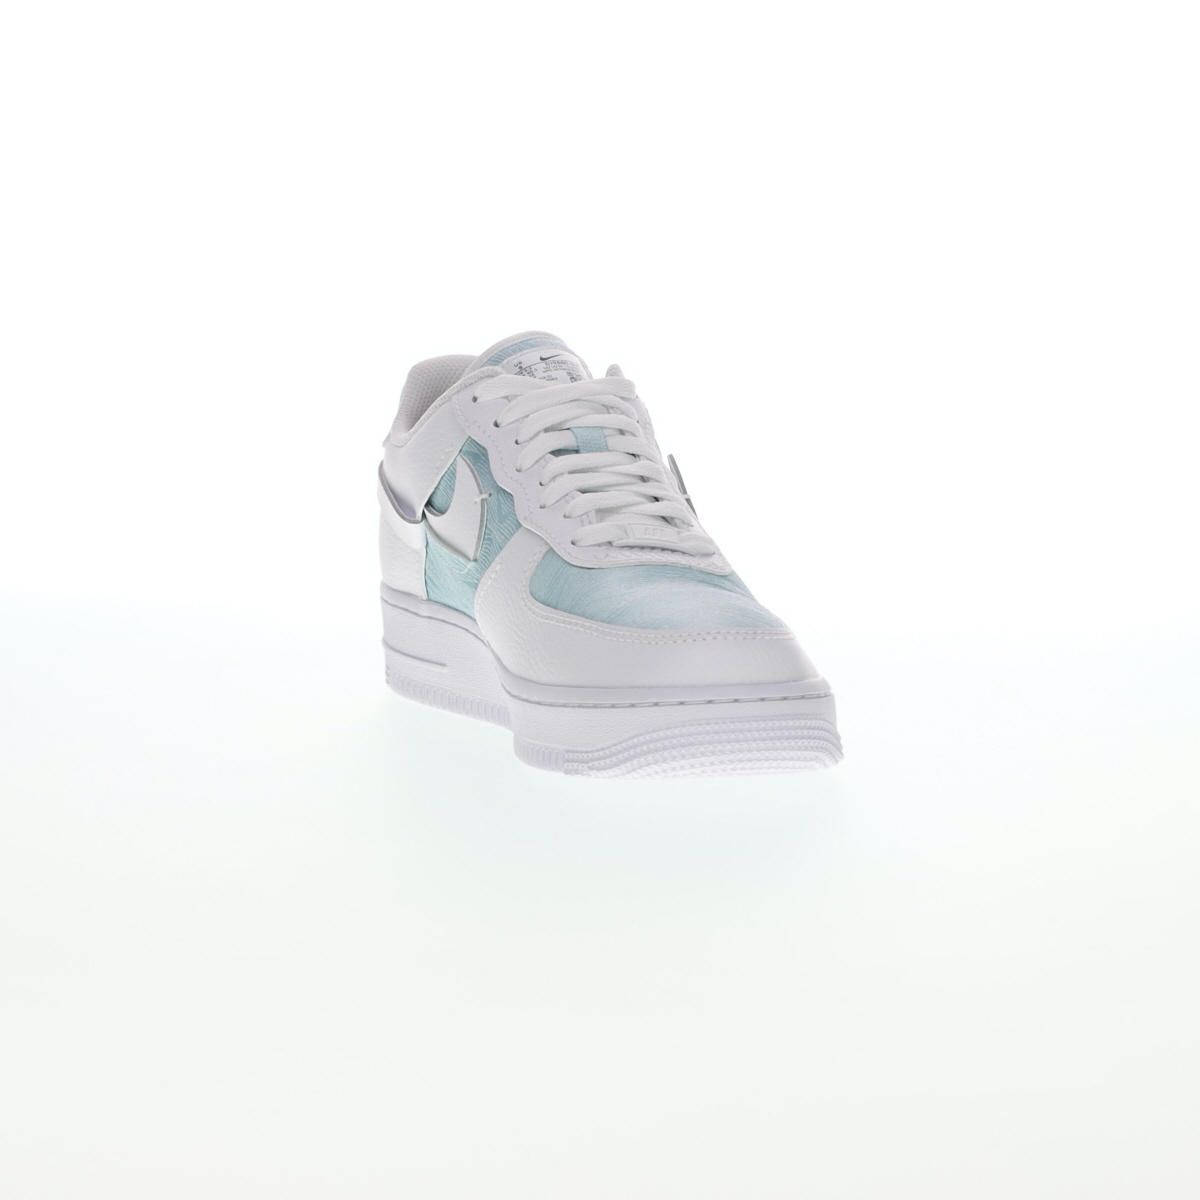 cheap authentic nike air max 1 uk version for sale